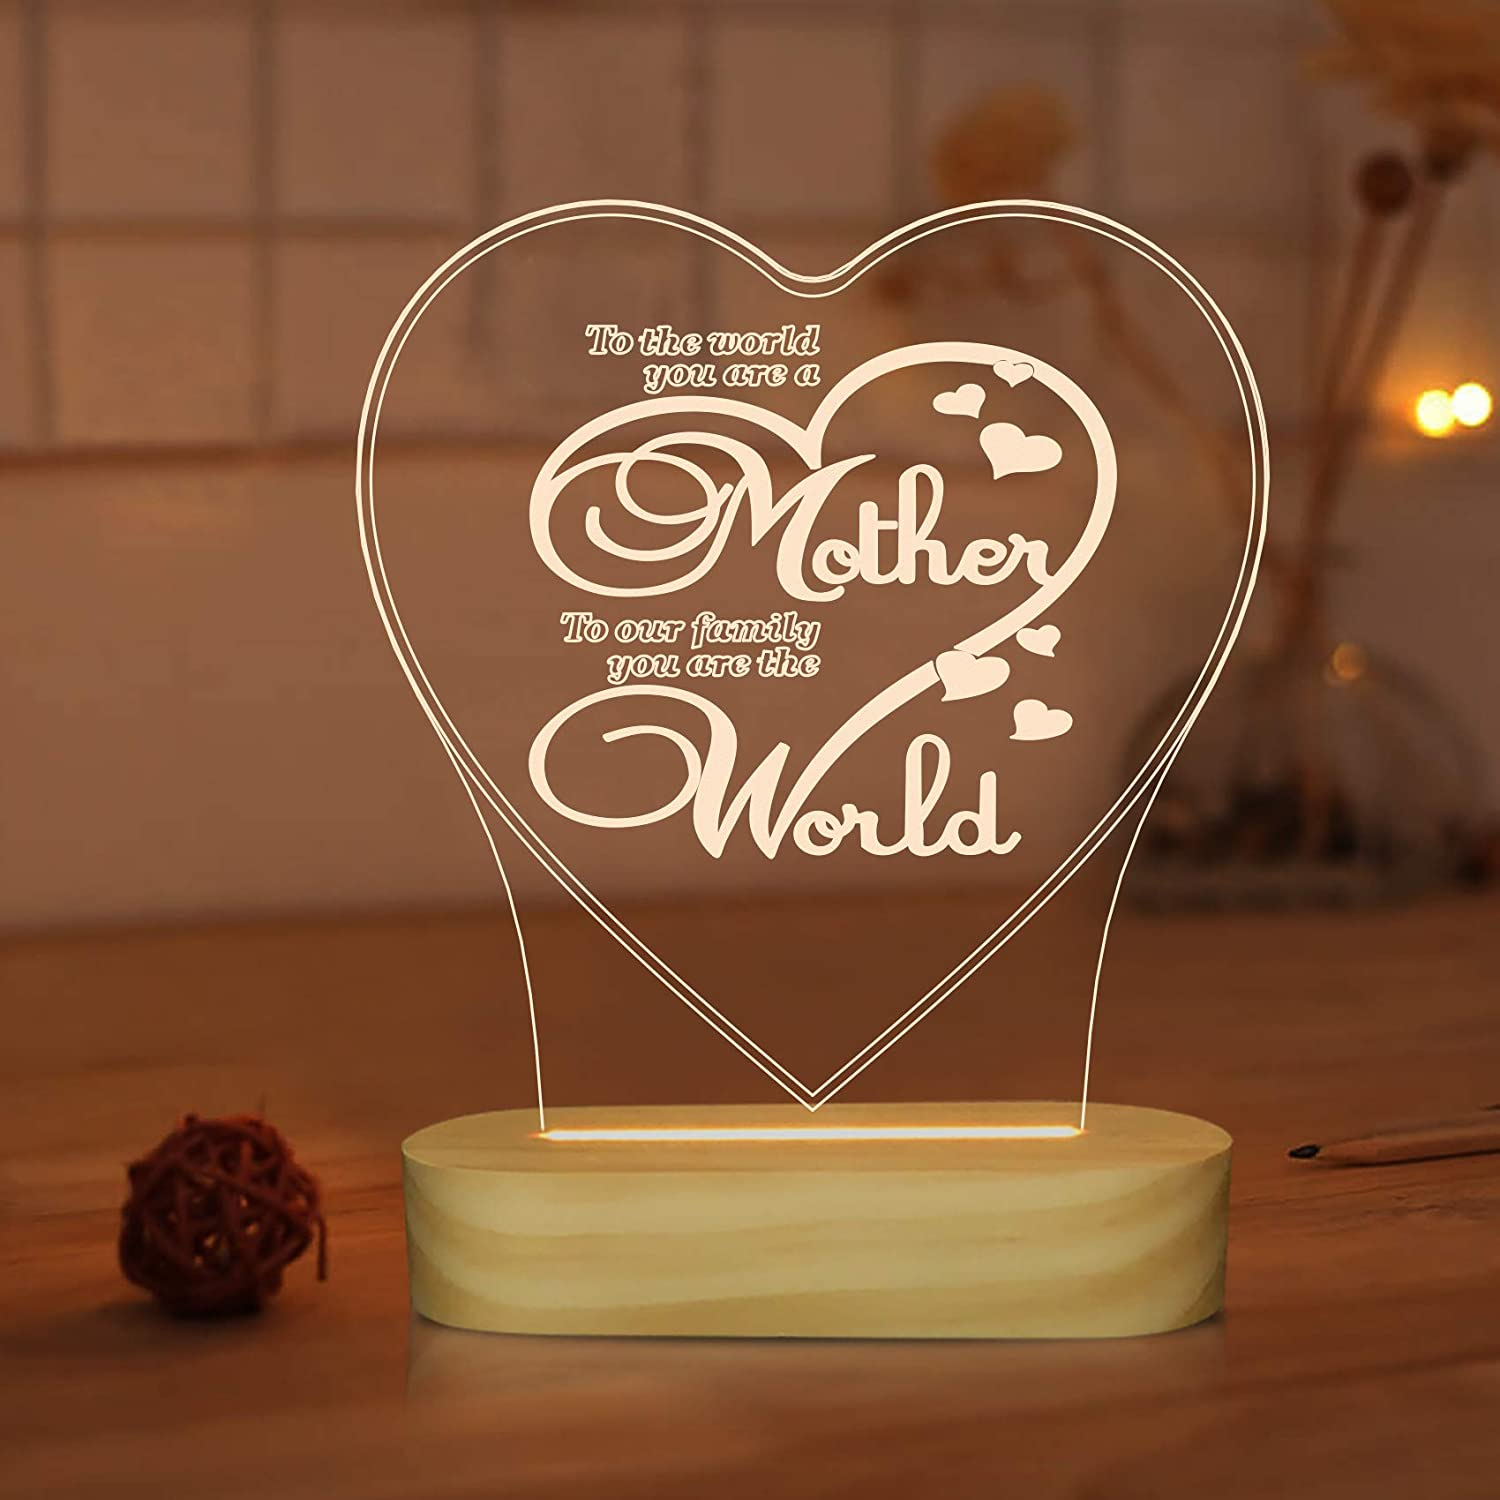 Love 3D Night Light LED Illusion Table Lamp for Mom Mother Holiday Birthday Sweet Gifts,Warm White Color Decor Lighting